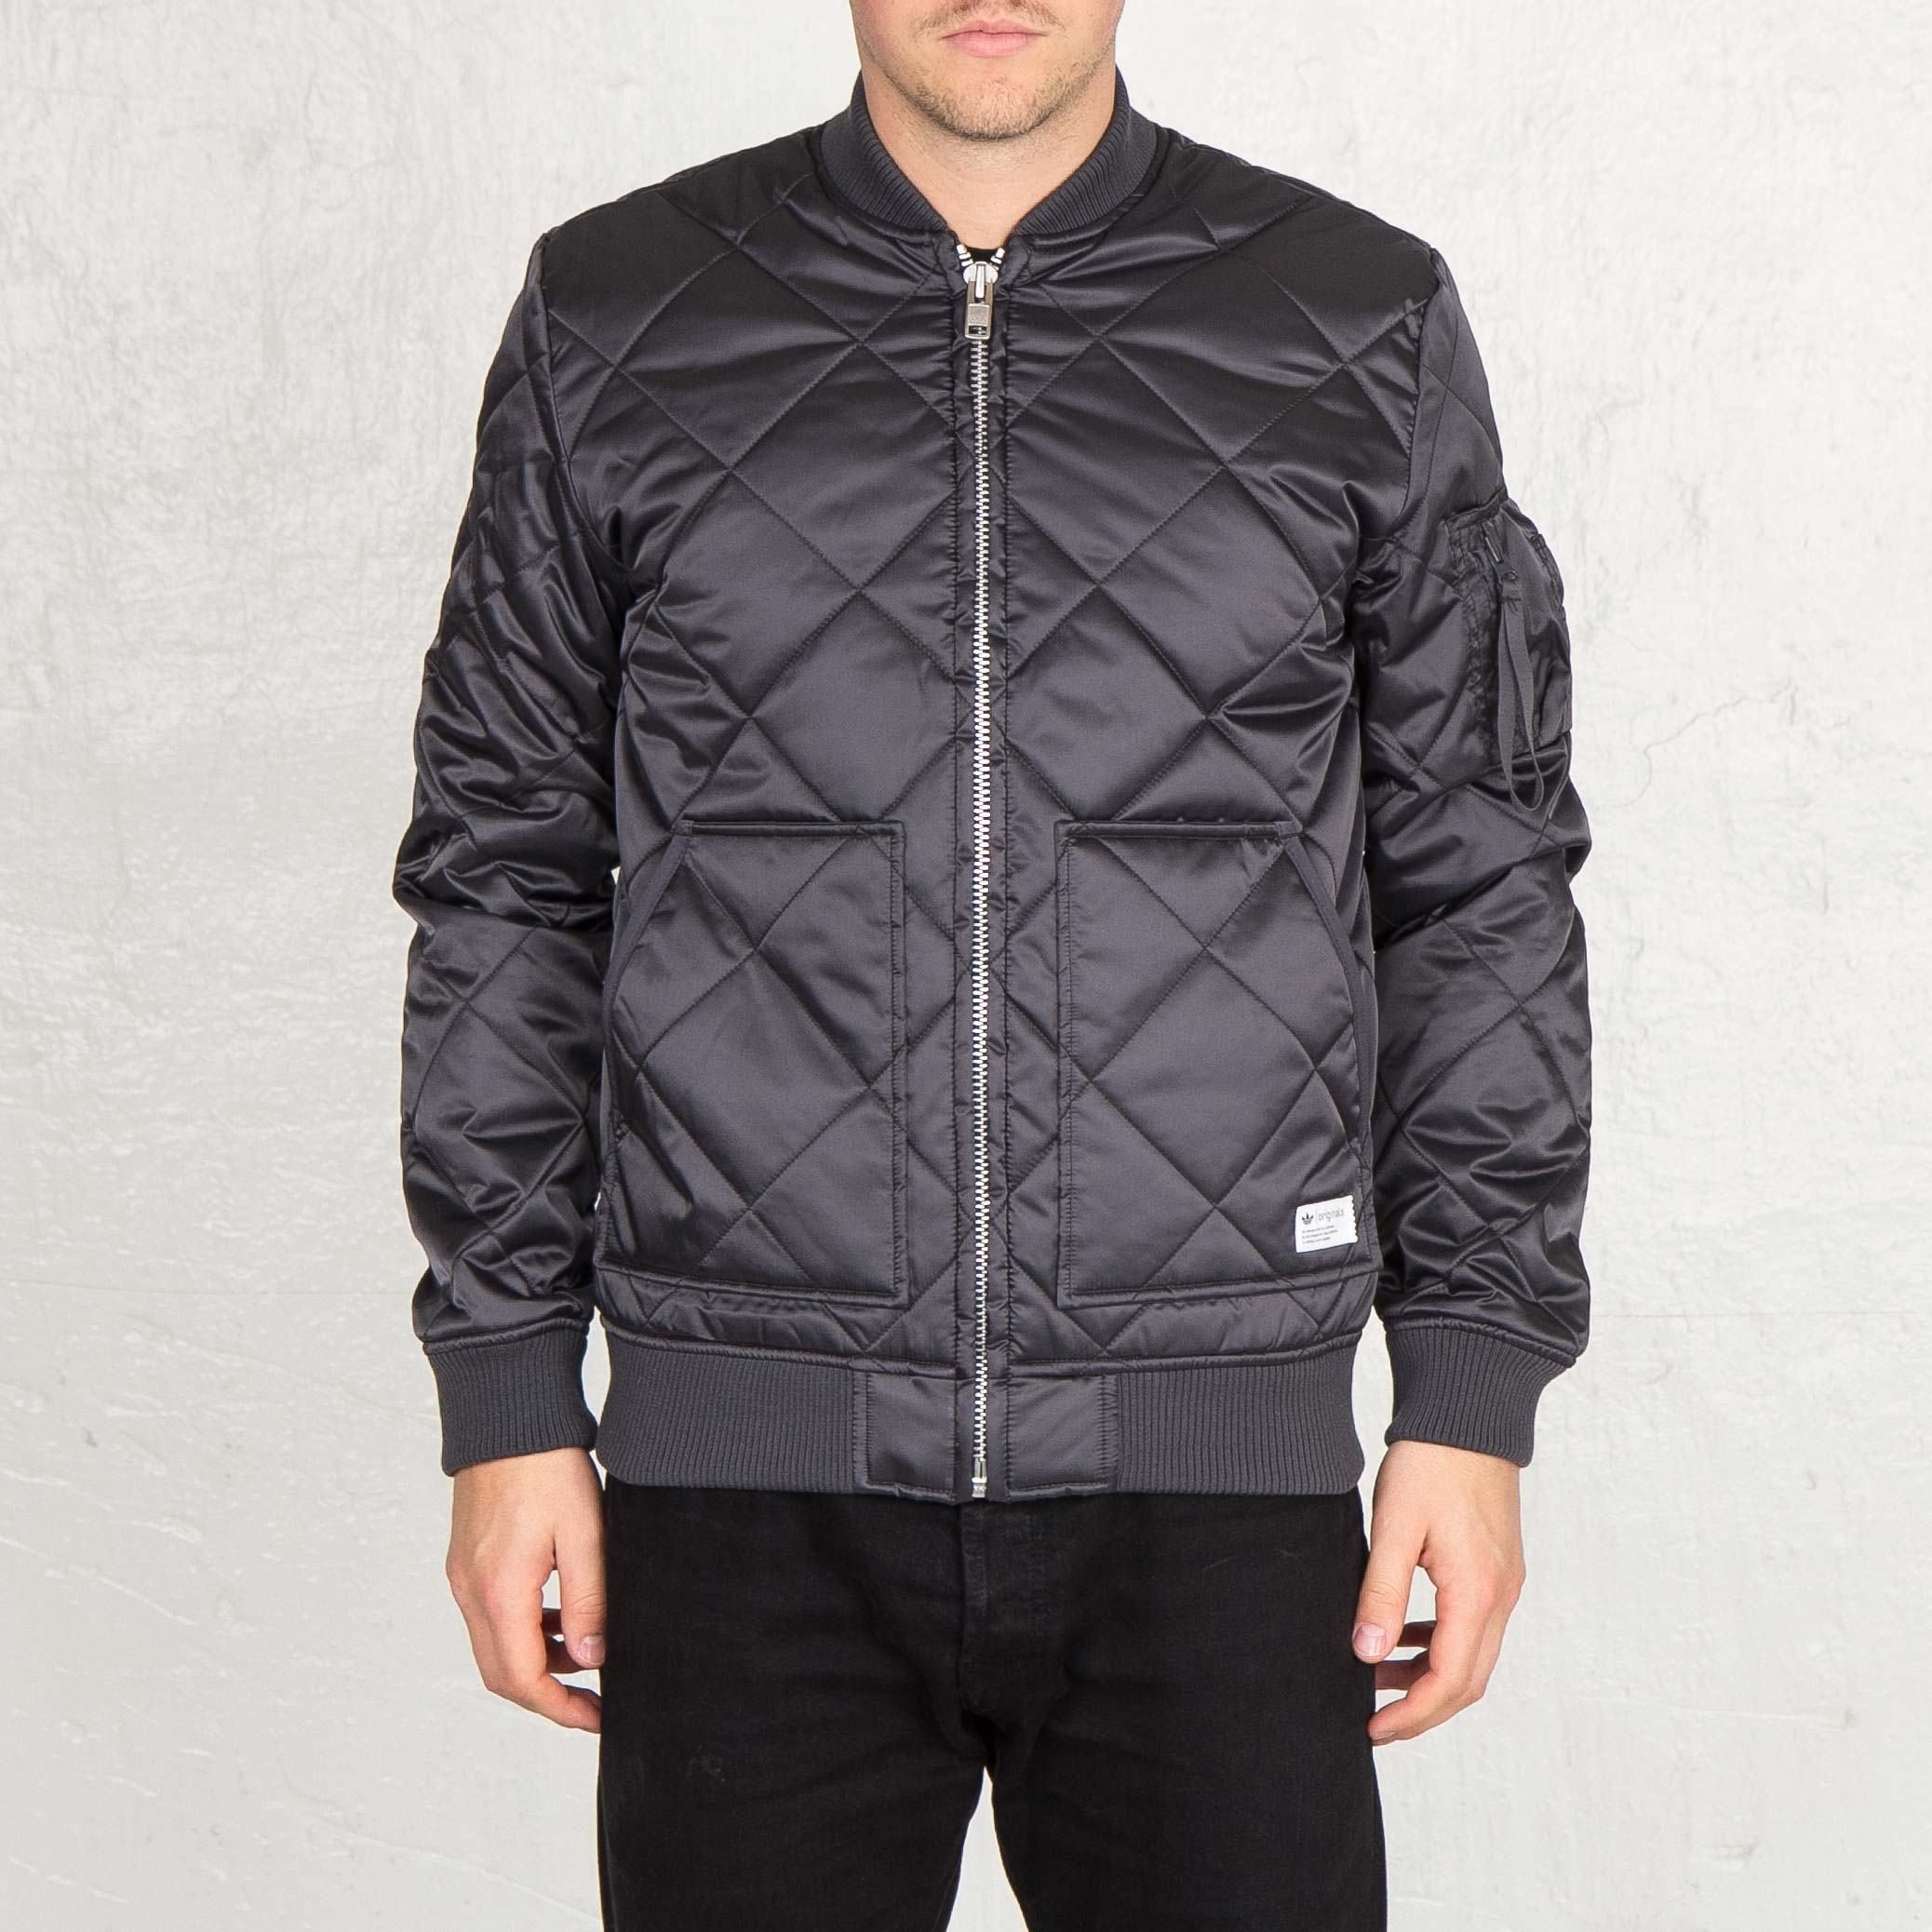 1c691a650fc3 adidas Quilted Bomber Jacket - Aa9025 - Sneakersnstuff